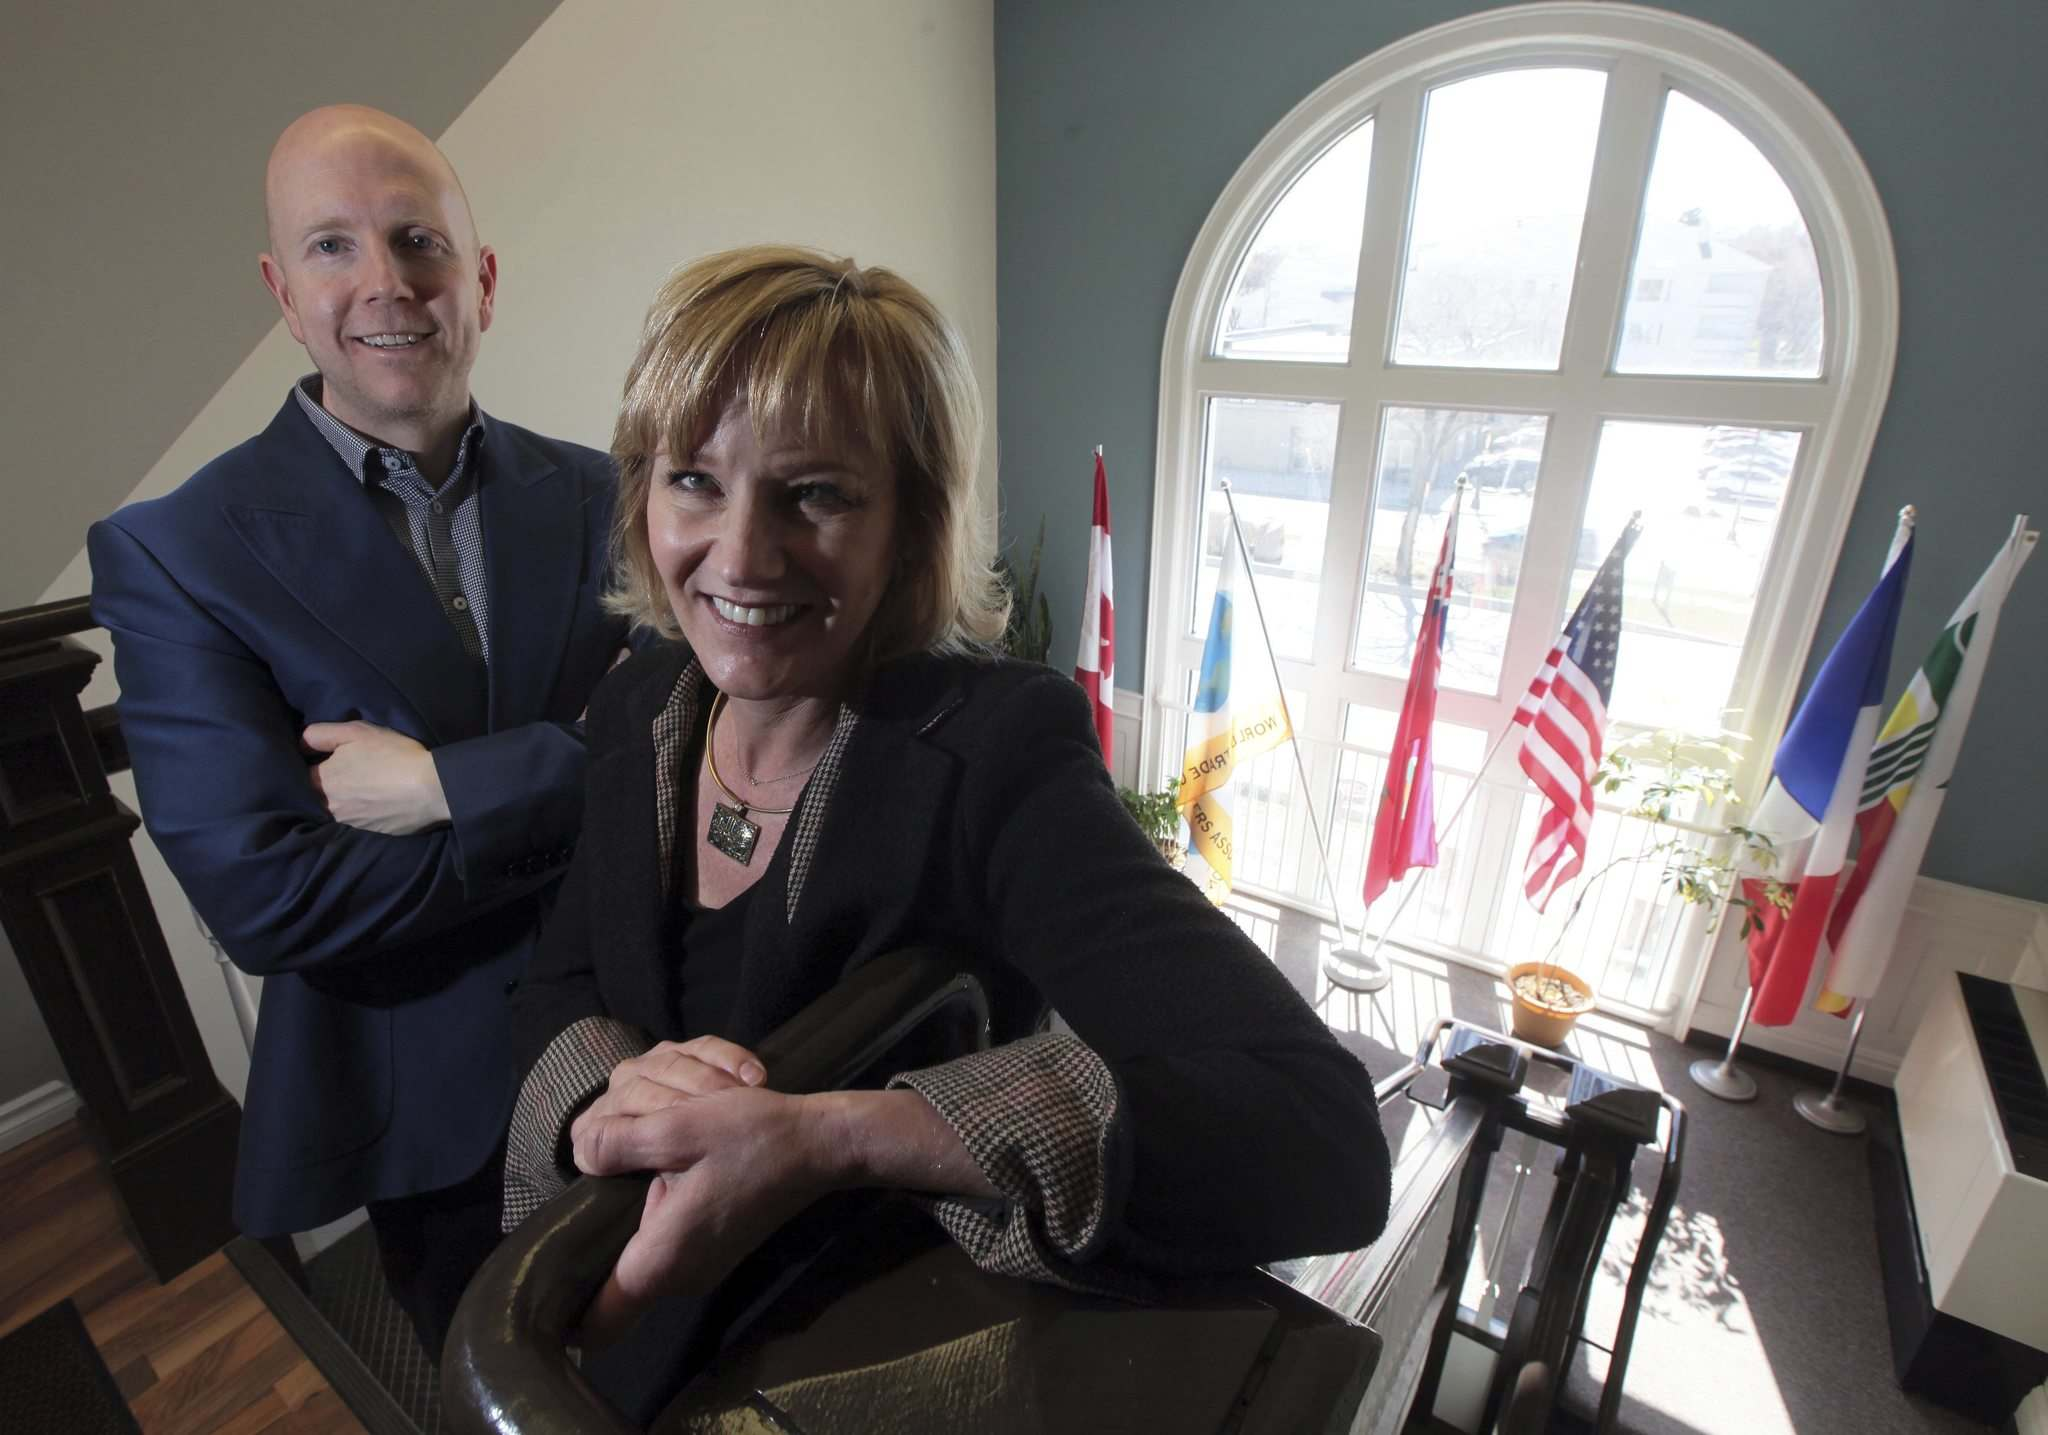 PHIL HOSSACK / WINNIPEG FREE PRESS</p><p>World Trade Centre Winnipeg vice-president Derek Earl (left) and president and CEO Mariette Mulaire are excited about the fourth Centrallia event.</p>